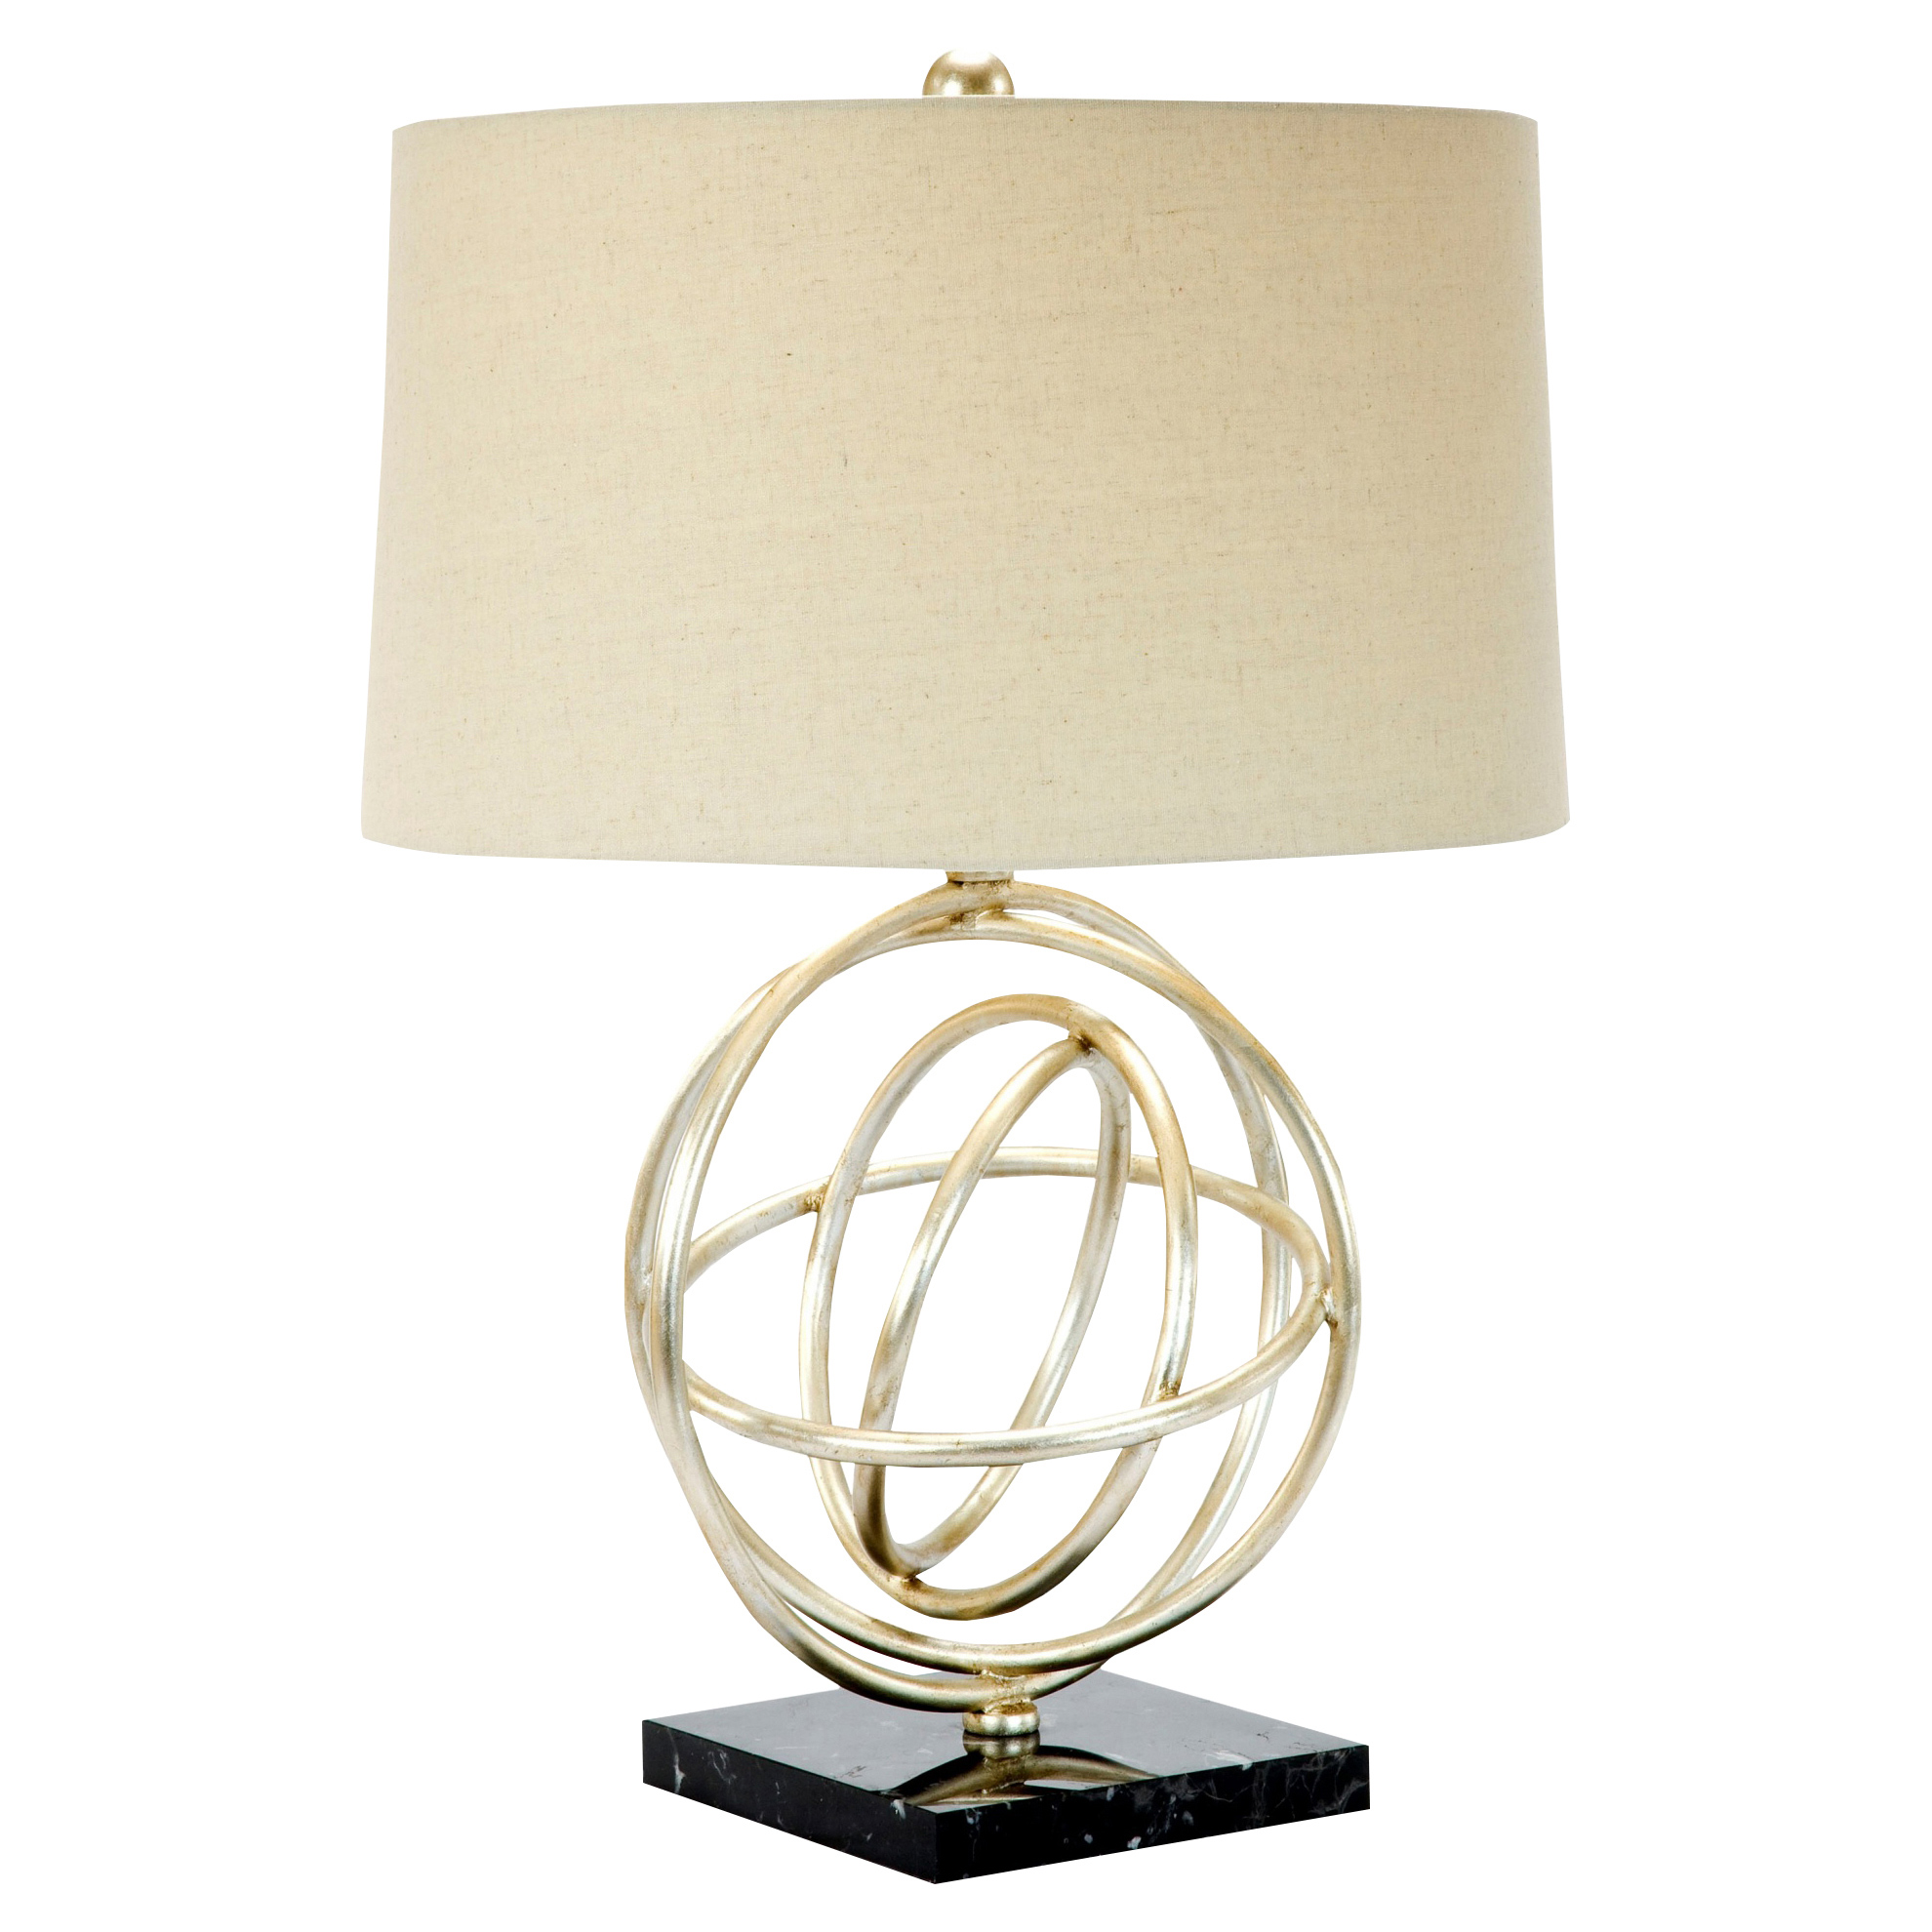 Aleksy Modern Classic Silver Celestial Table Lamp